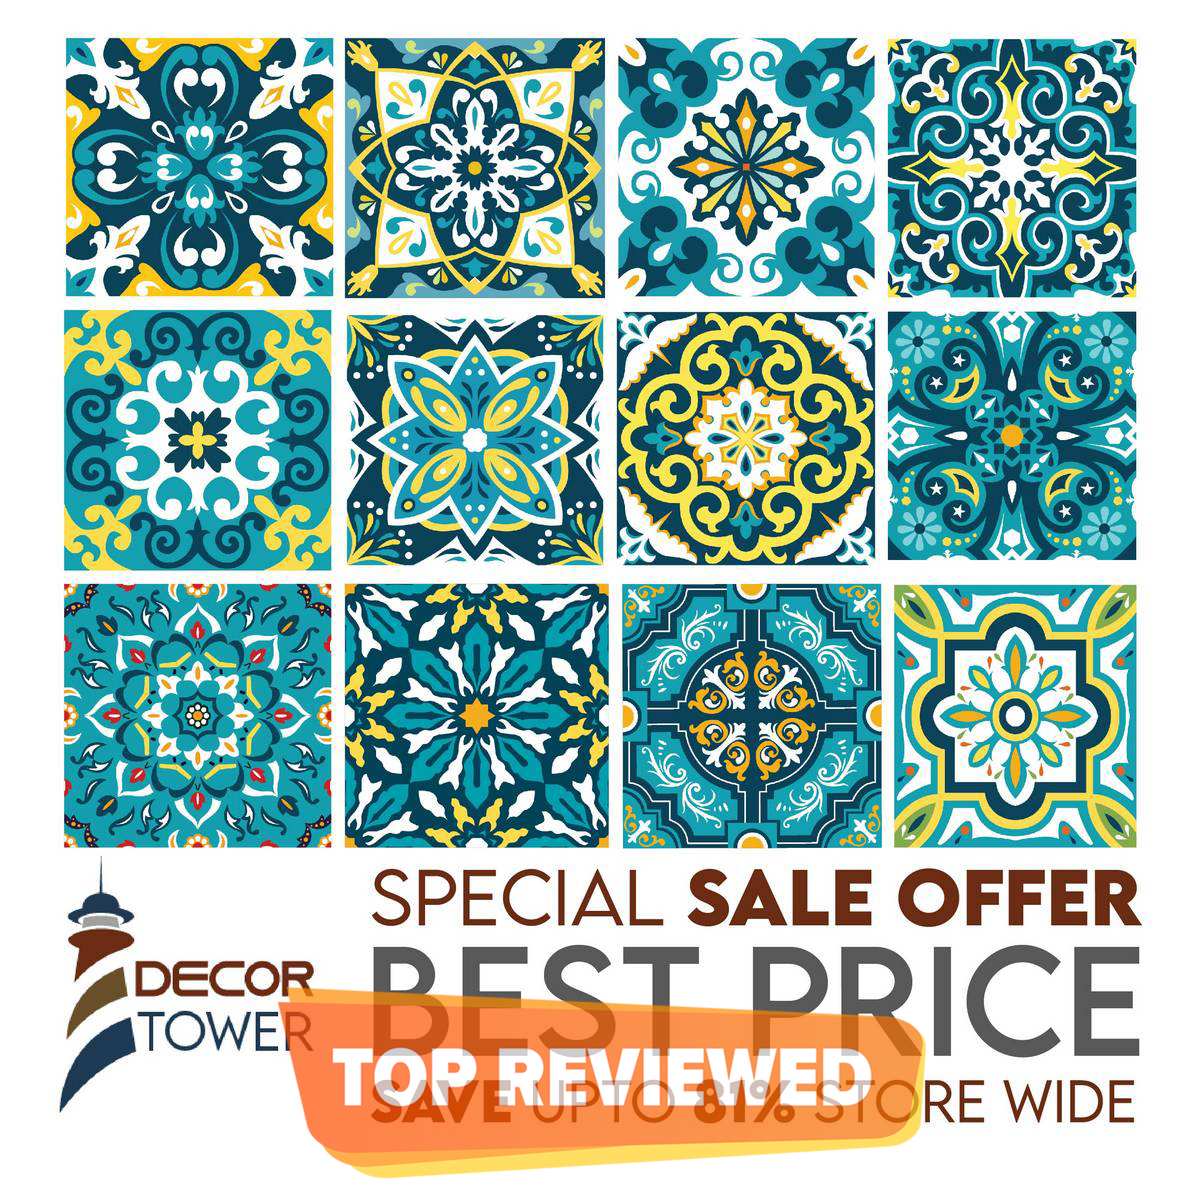 Dark Turquoise Self Adhesive Tile Stickers for walls Pack of 12 (5x5 inches) for Home Decor by Decor Tower